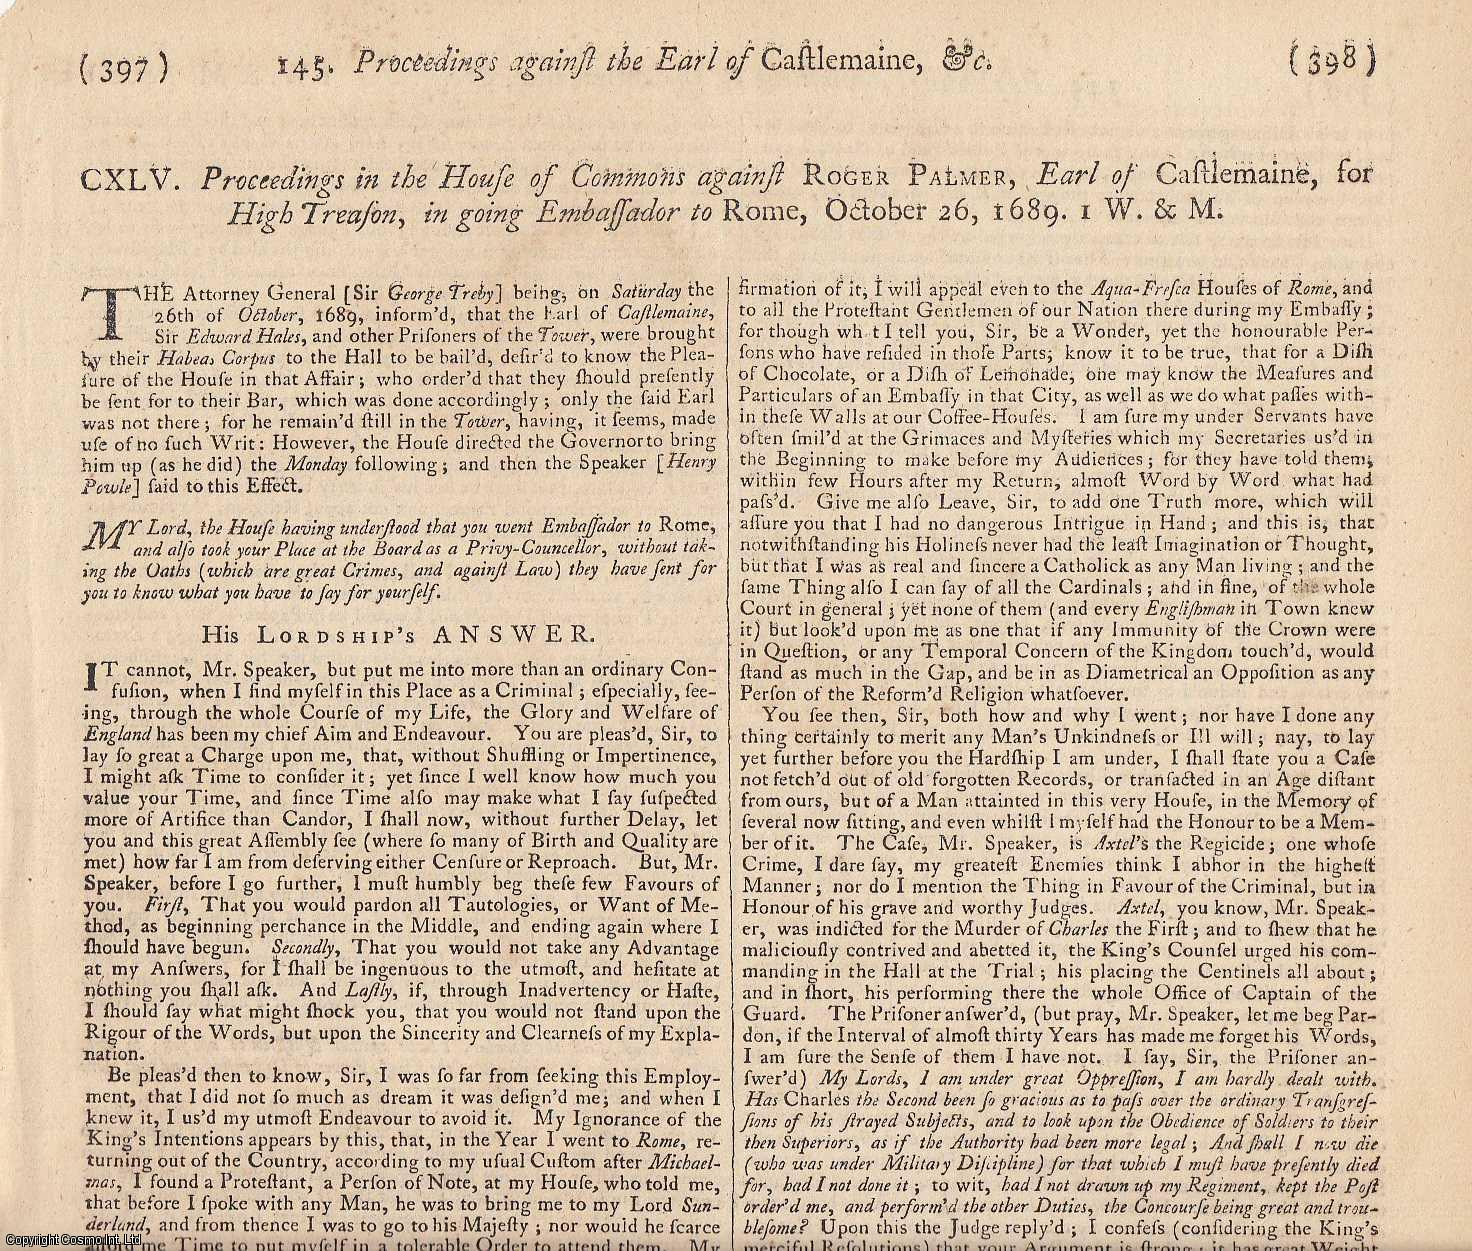 NOTED CATHOLIC WRITER.  The Trial of Roger Palmer, esq. Earl of Castlemaine, in the Kingdom of Ireland, at the King's Bench, for High Treason, AD 1680., [Trial].